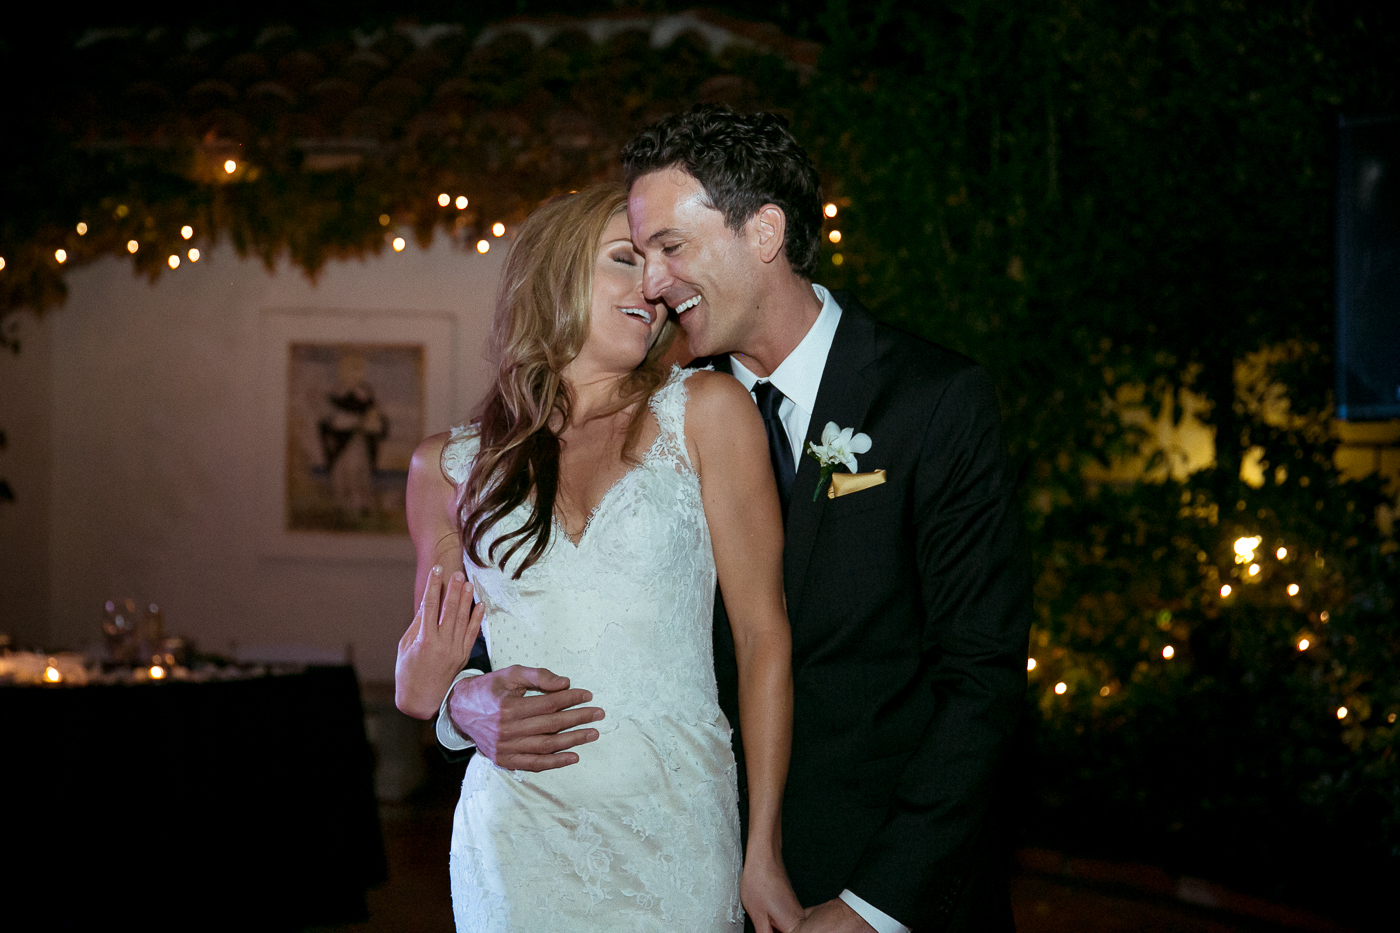 WEDDING_LEAF_PHOTOGRAPHY_DARLINGTON_HOUSE_LA_JOLLA_CATAMARAN_HOTEL_KIM_&_BOB_WED_2013_7X9A6435